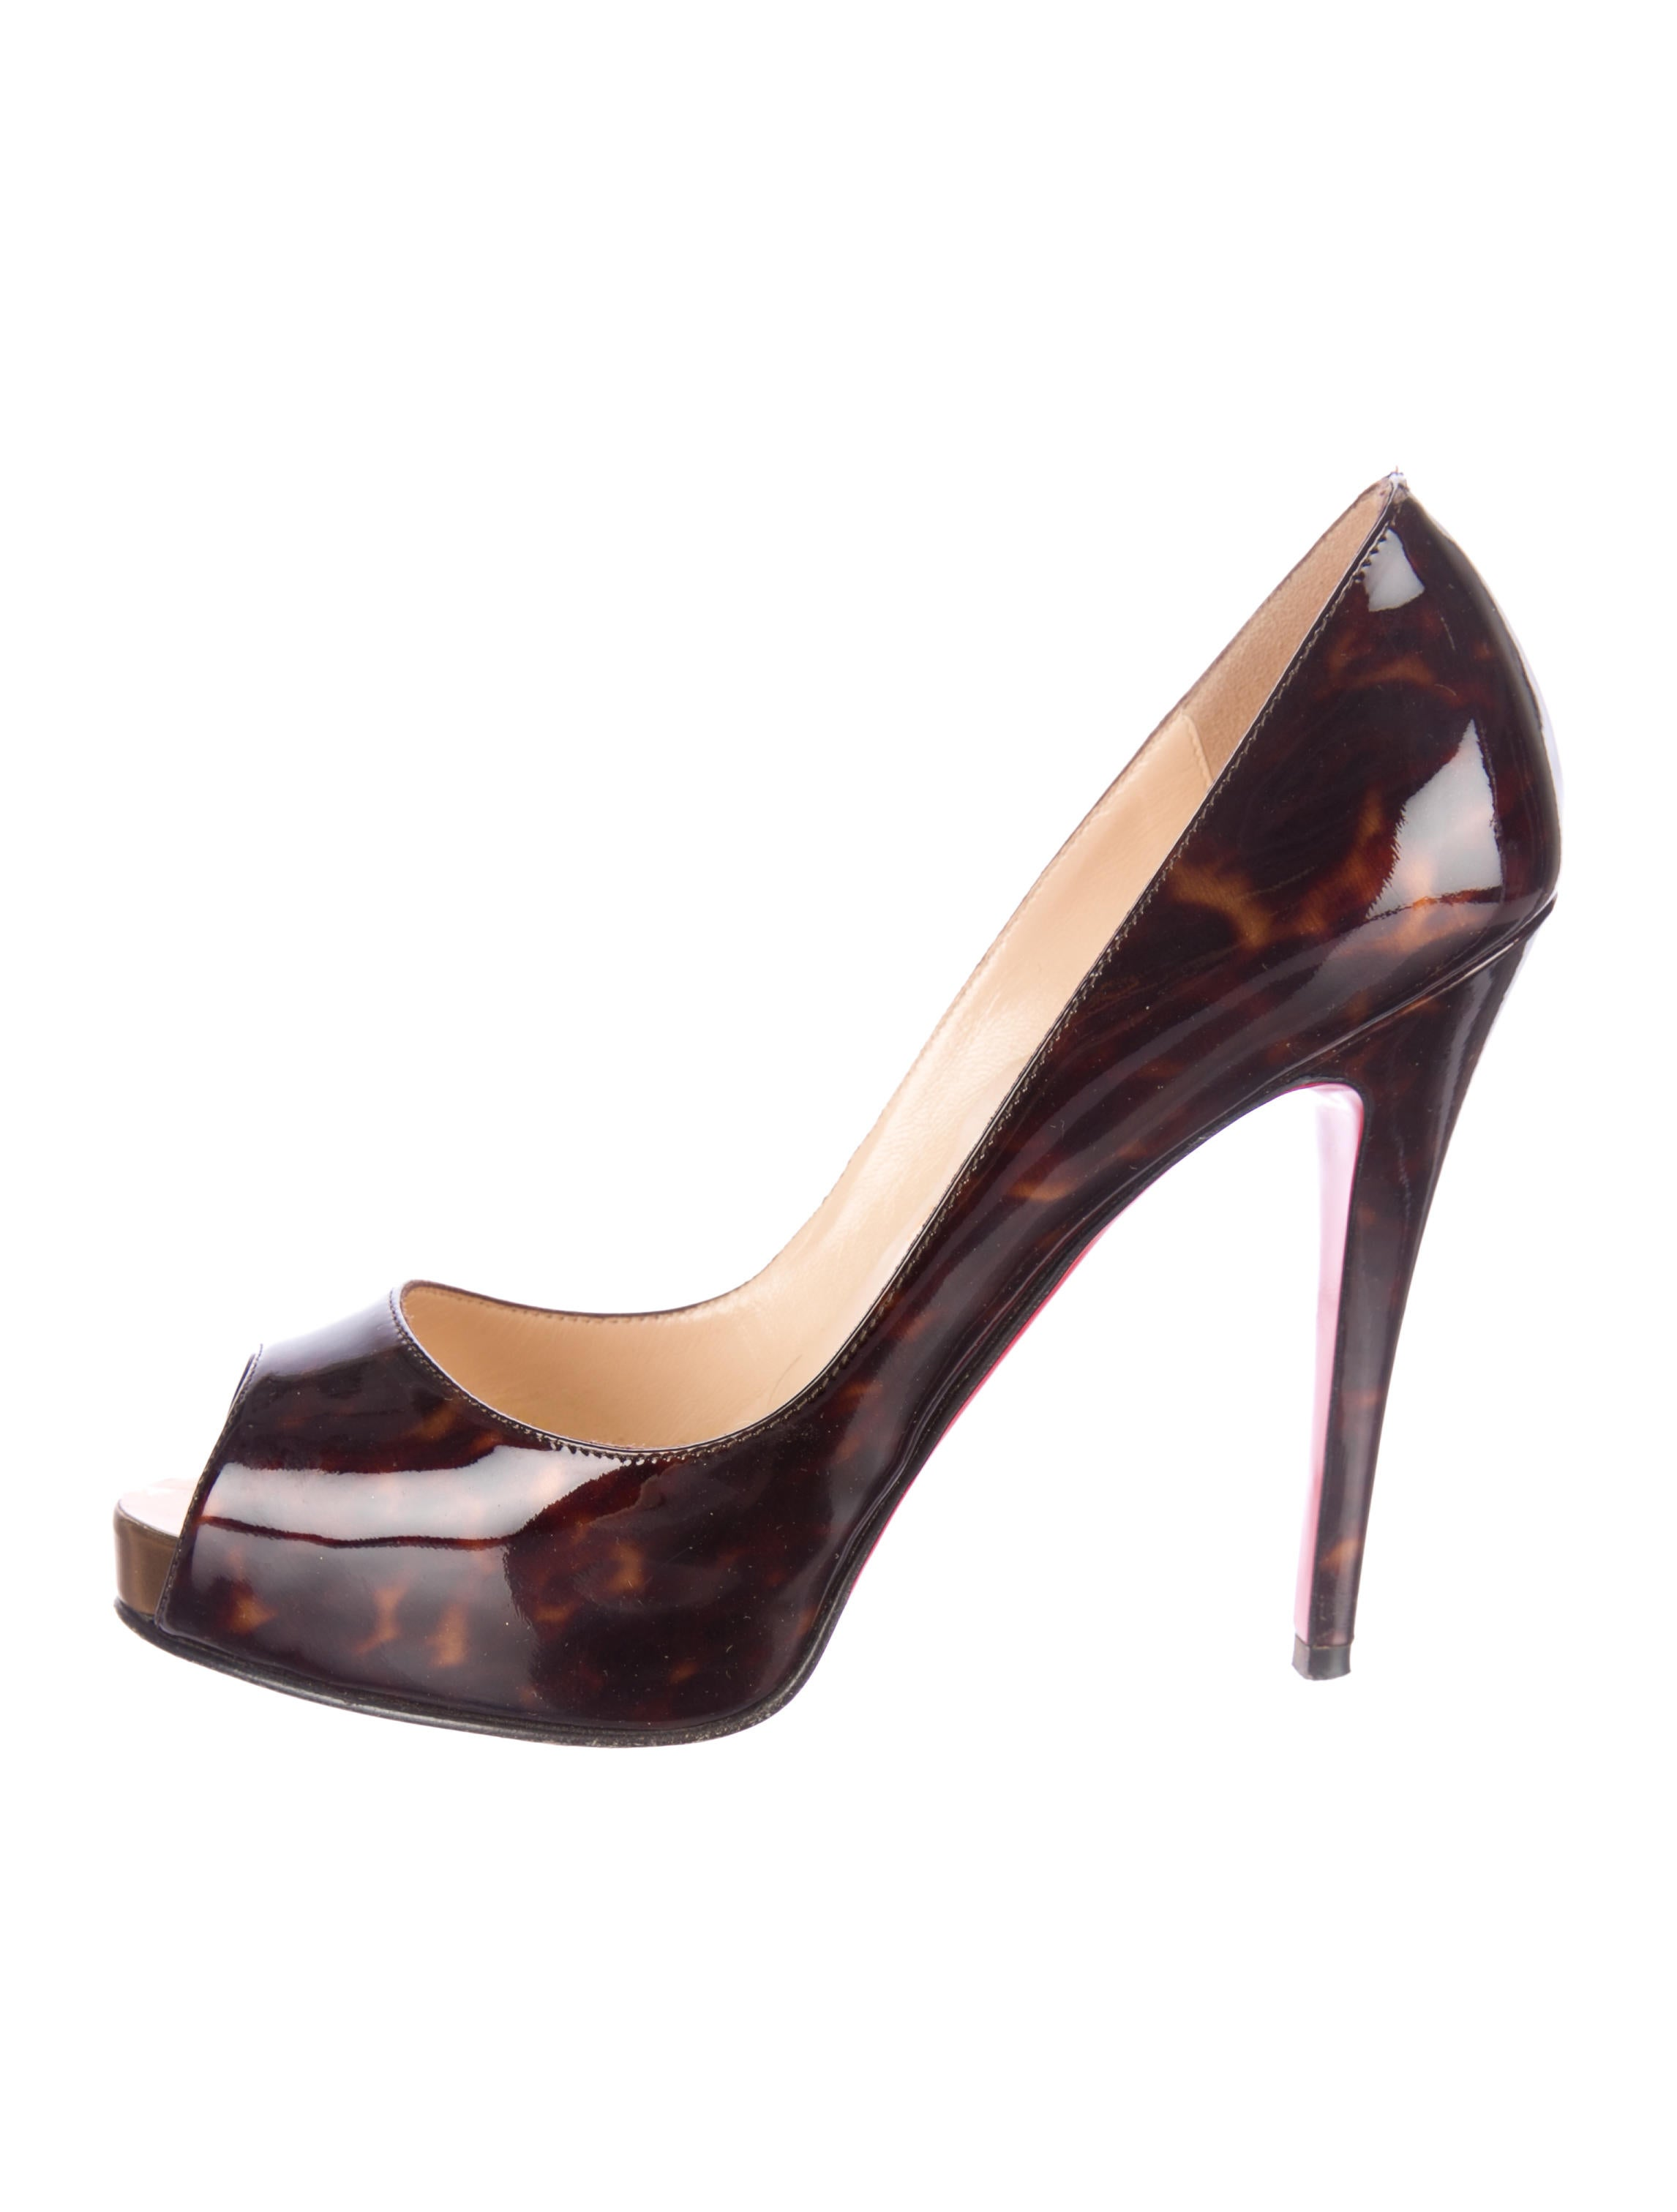 replicas shoes - Artesur ? christian louboutin tortoiseshell print Very Prive ...